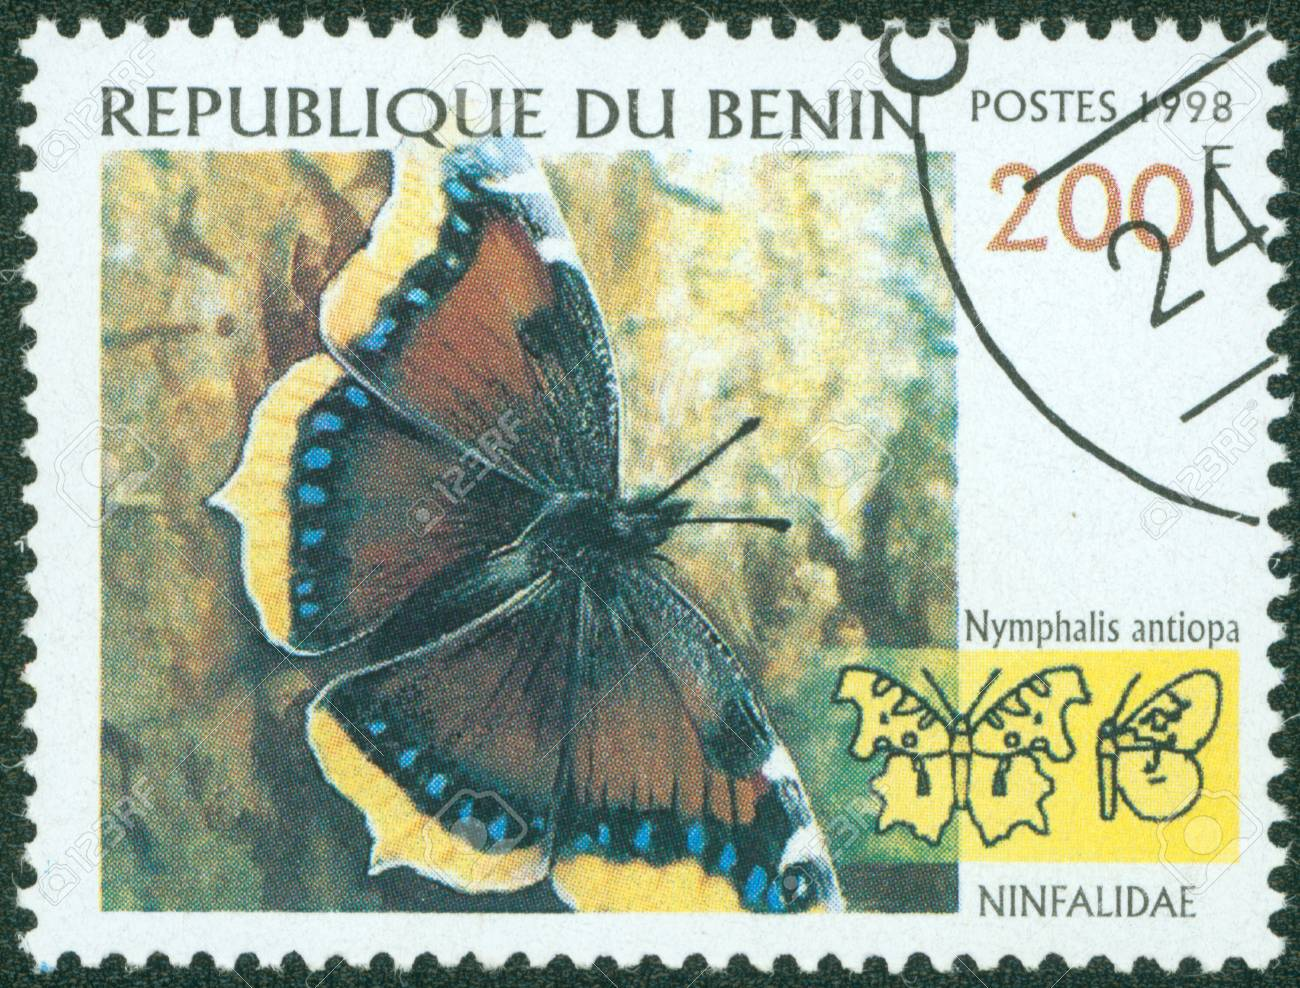 BENIN - CIRCA 1998  stamp printed by BENIN, shows butterfly, circa 1998  Stock Photo - 16266260